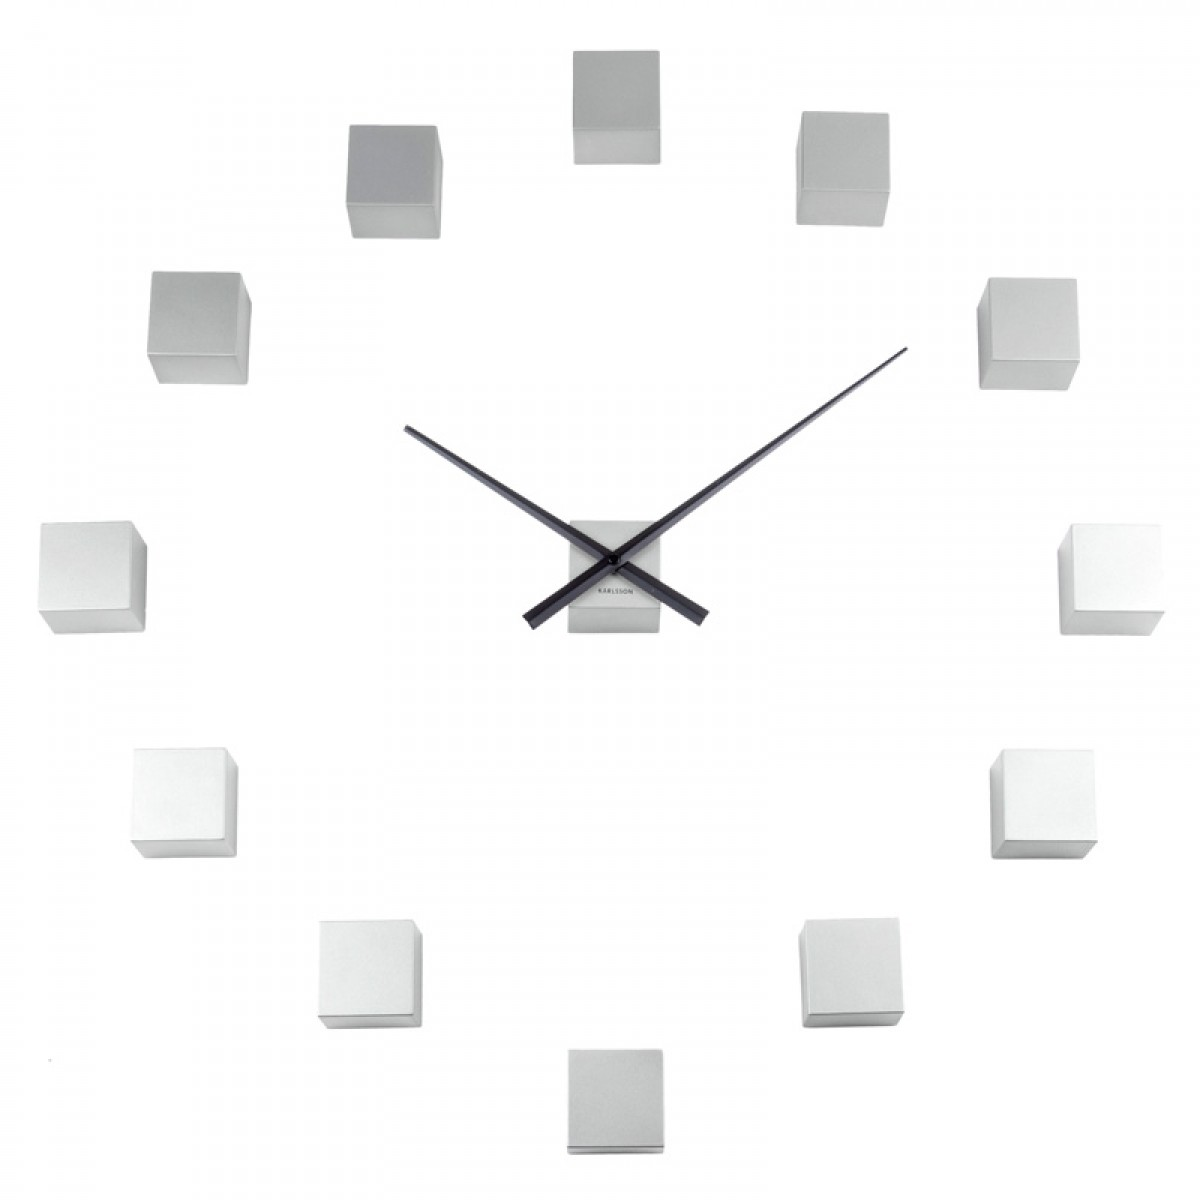 Karlsson diy cubic wall clock gallery home wall decoration ideas karlsson diy cubic wall clock silver modular cube clock amipublicfo gallery amipublicfo Images